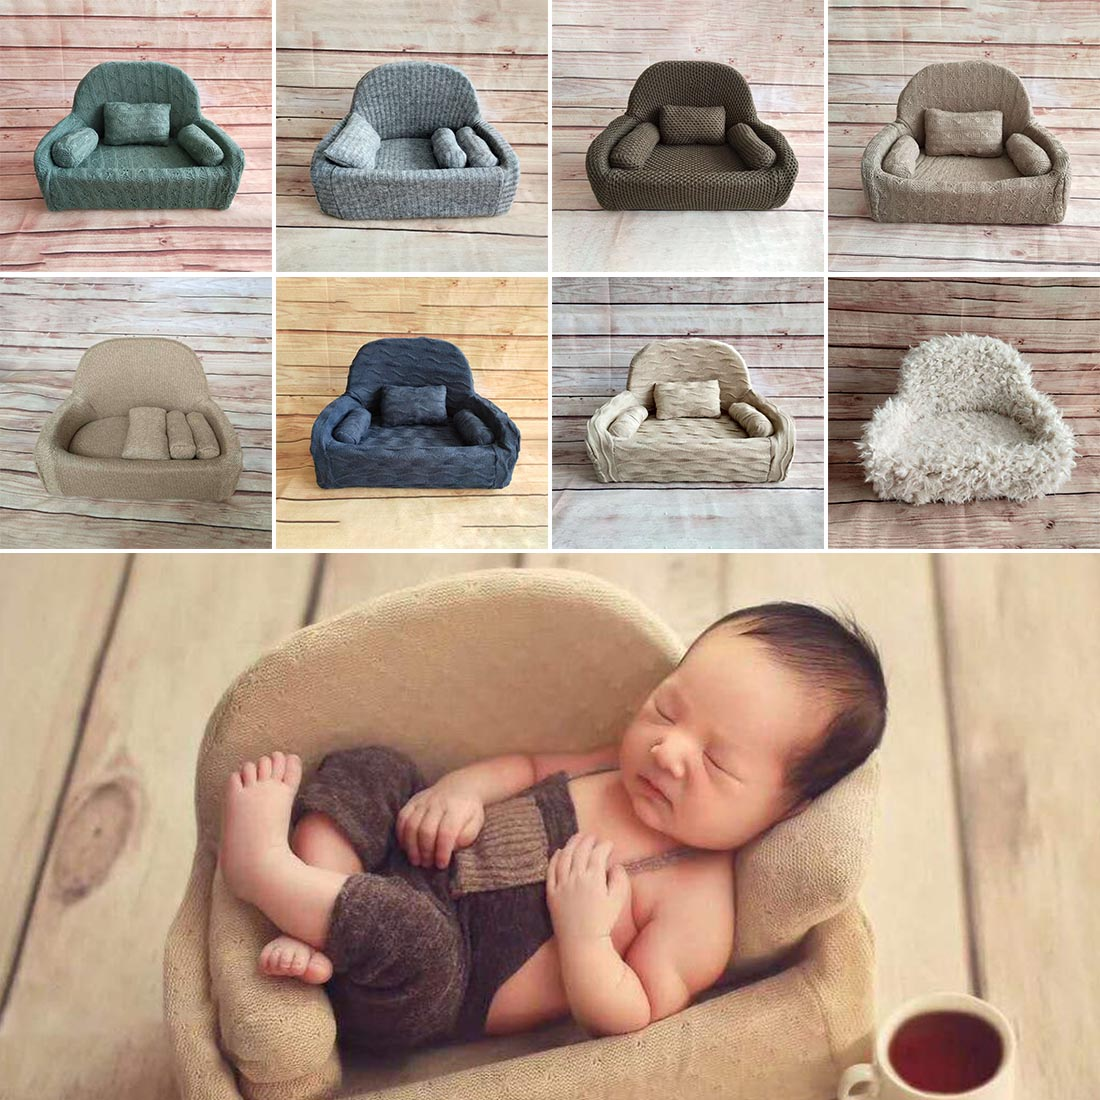 Newborn Baby Photography Props Posing Mini Sofa Chair Decoration Accessories Baby Photography  Studio Shooting Props